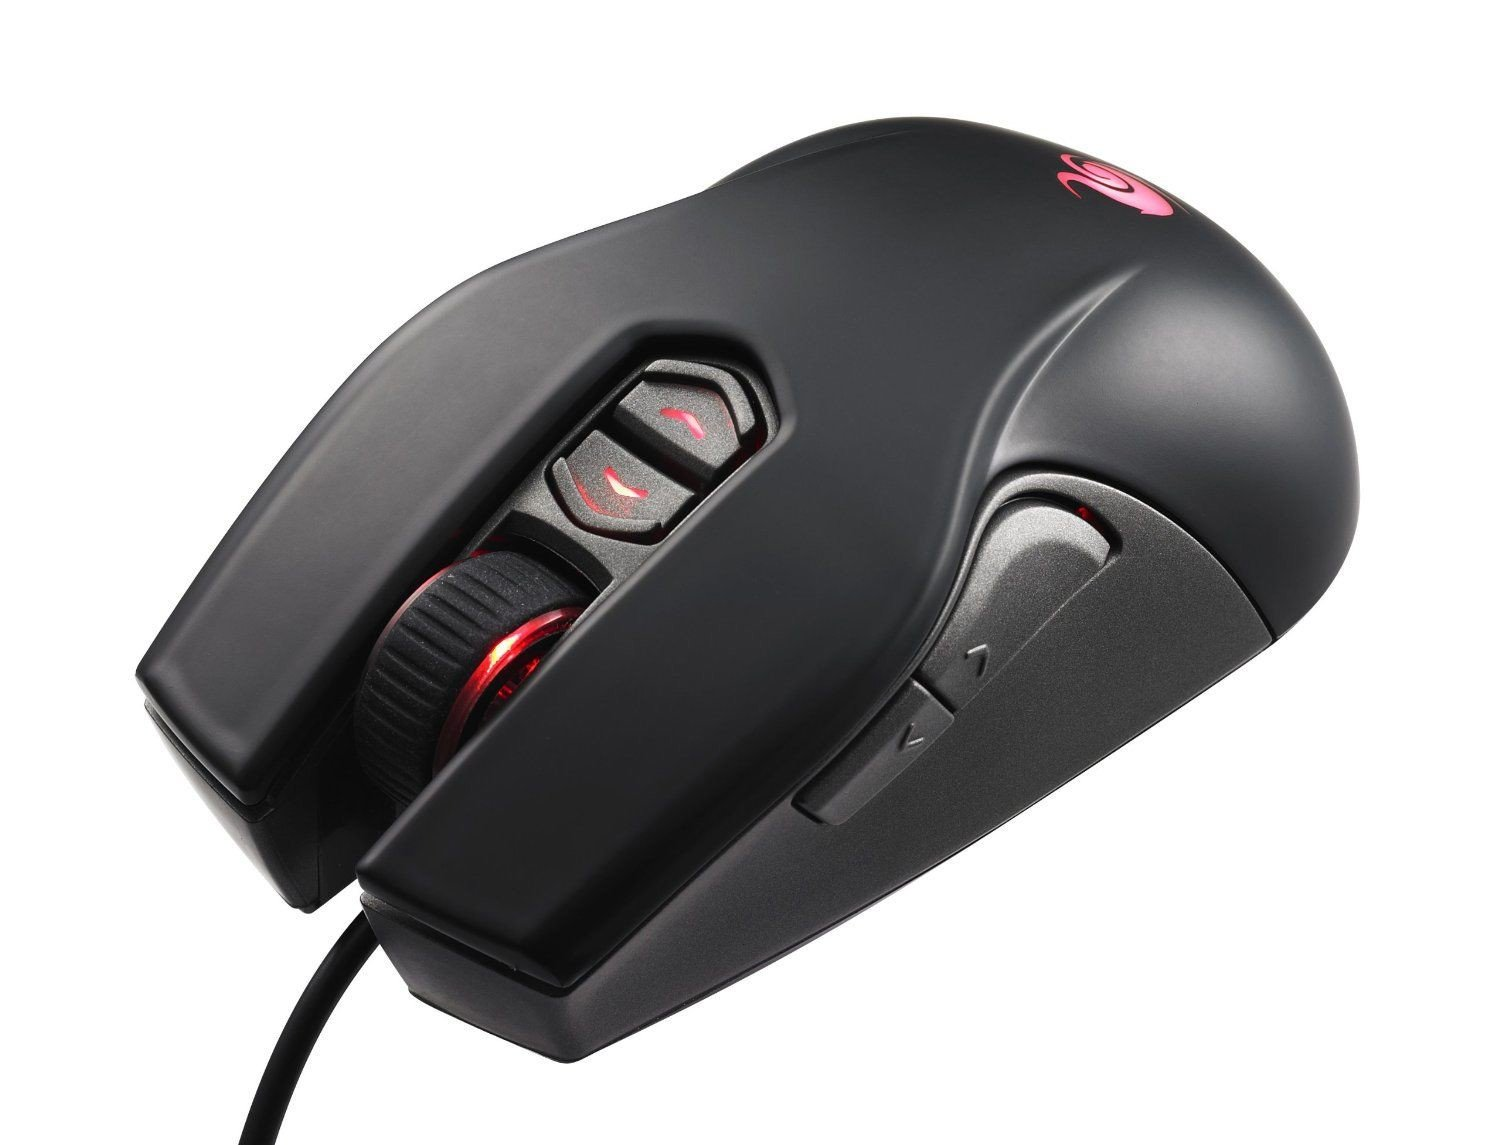 Mouse Cooler Master Storm Recon Gaming